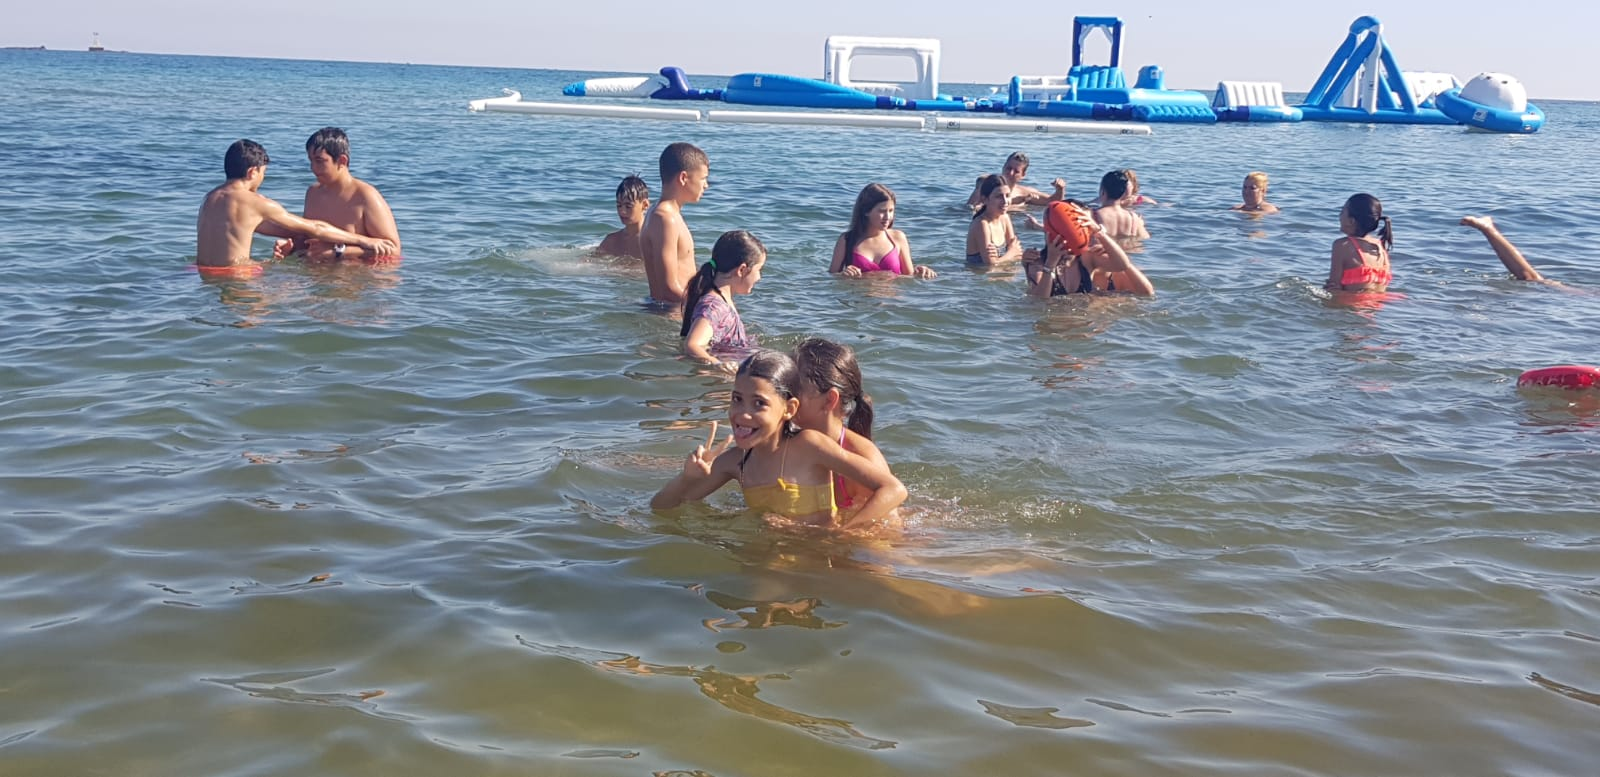 Language Camp for kids Bulgarian Seaside Z camp, Day 21 - at the beach - children bathe in the sea, behind them an inflatable water attraction